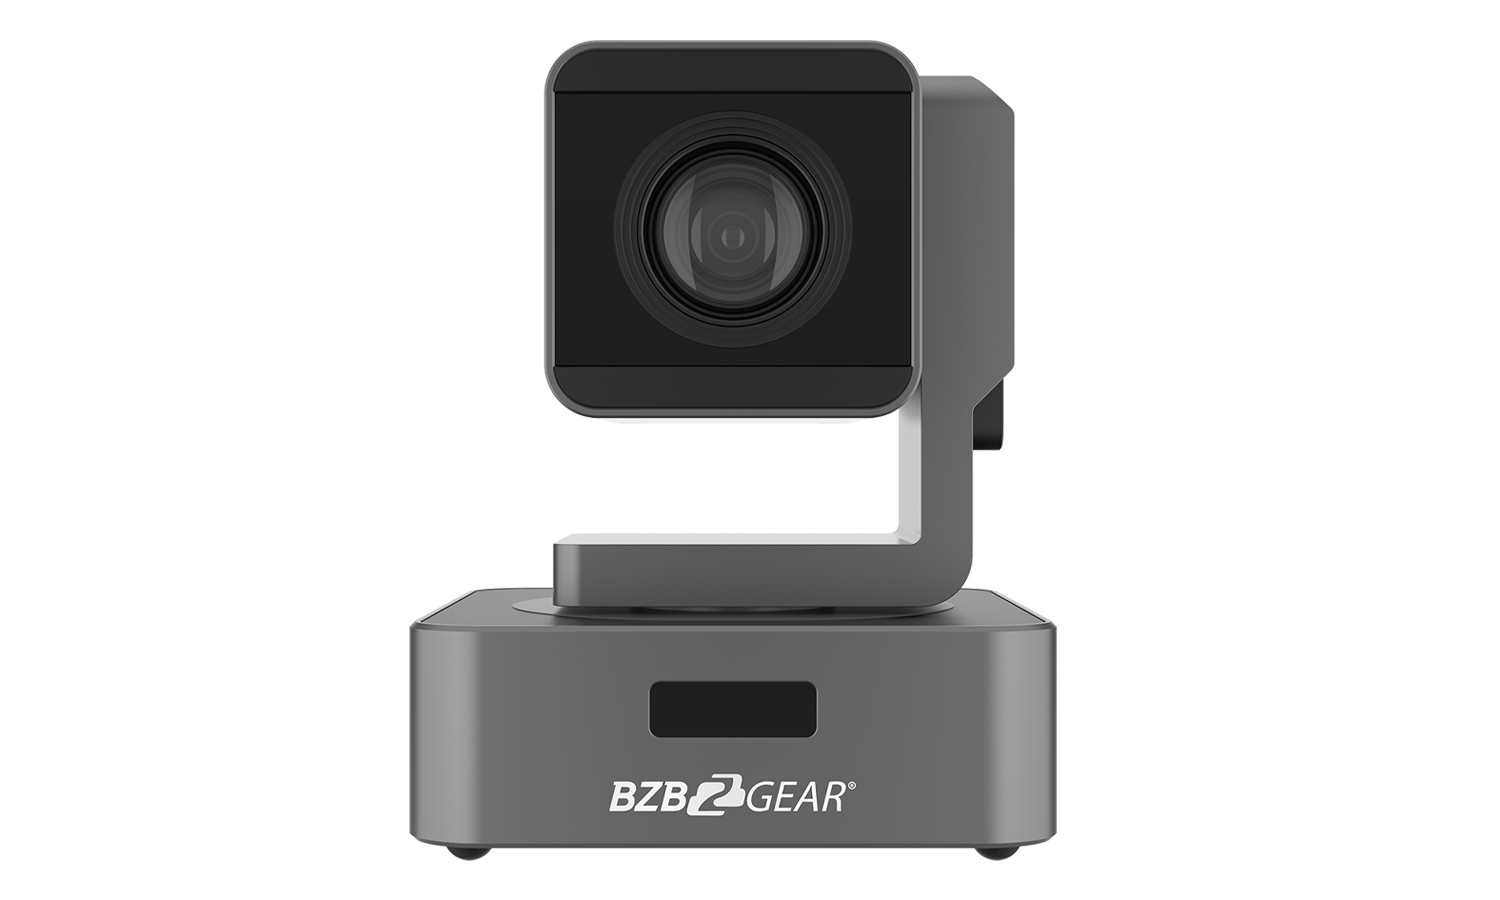 BZBGEAR BG-VPTZ-HSU20X PTZ Full HD 1080P 20X Zoom HDMI/SDI/USB 2.0 Live Streaming Camera